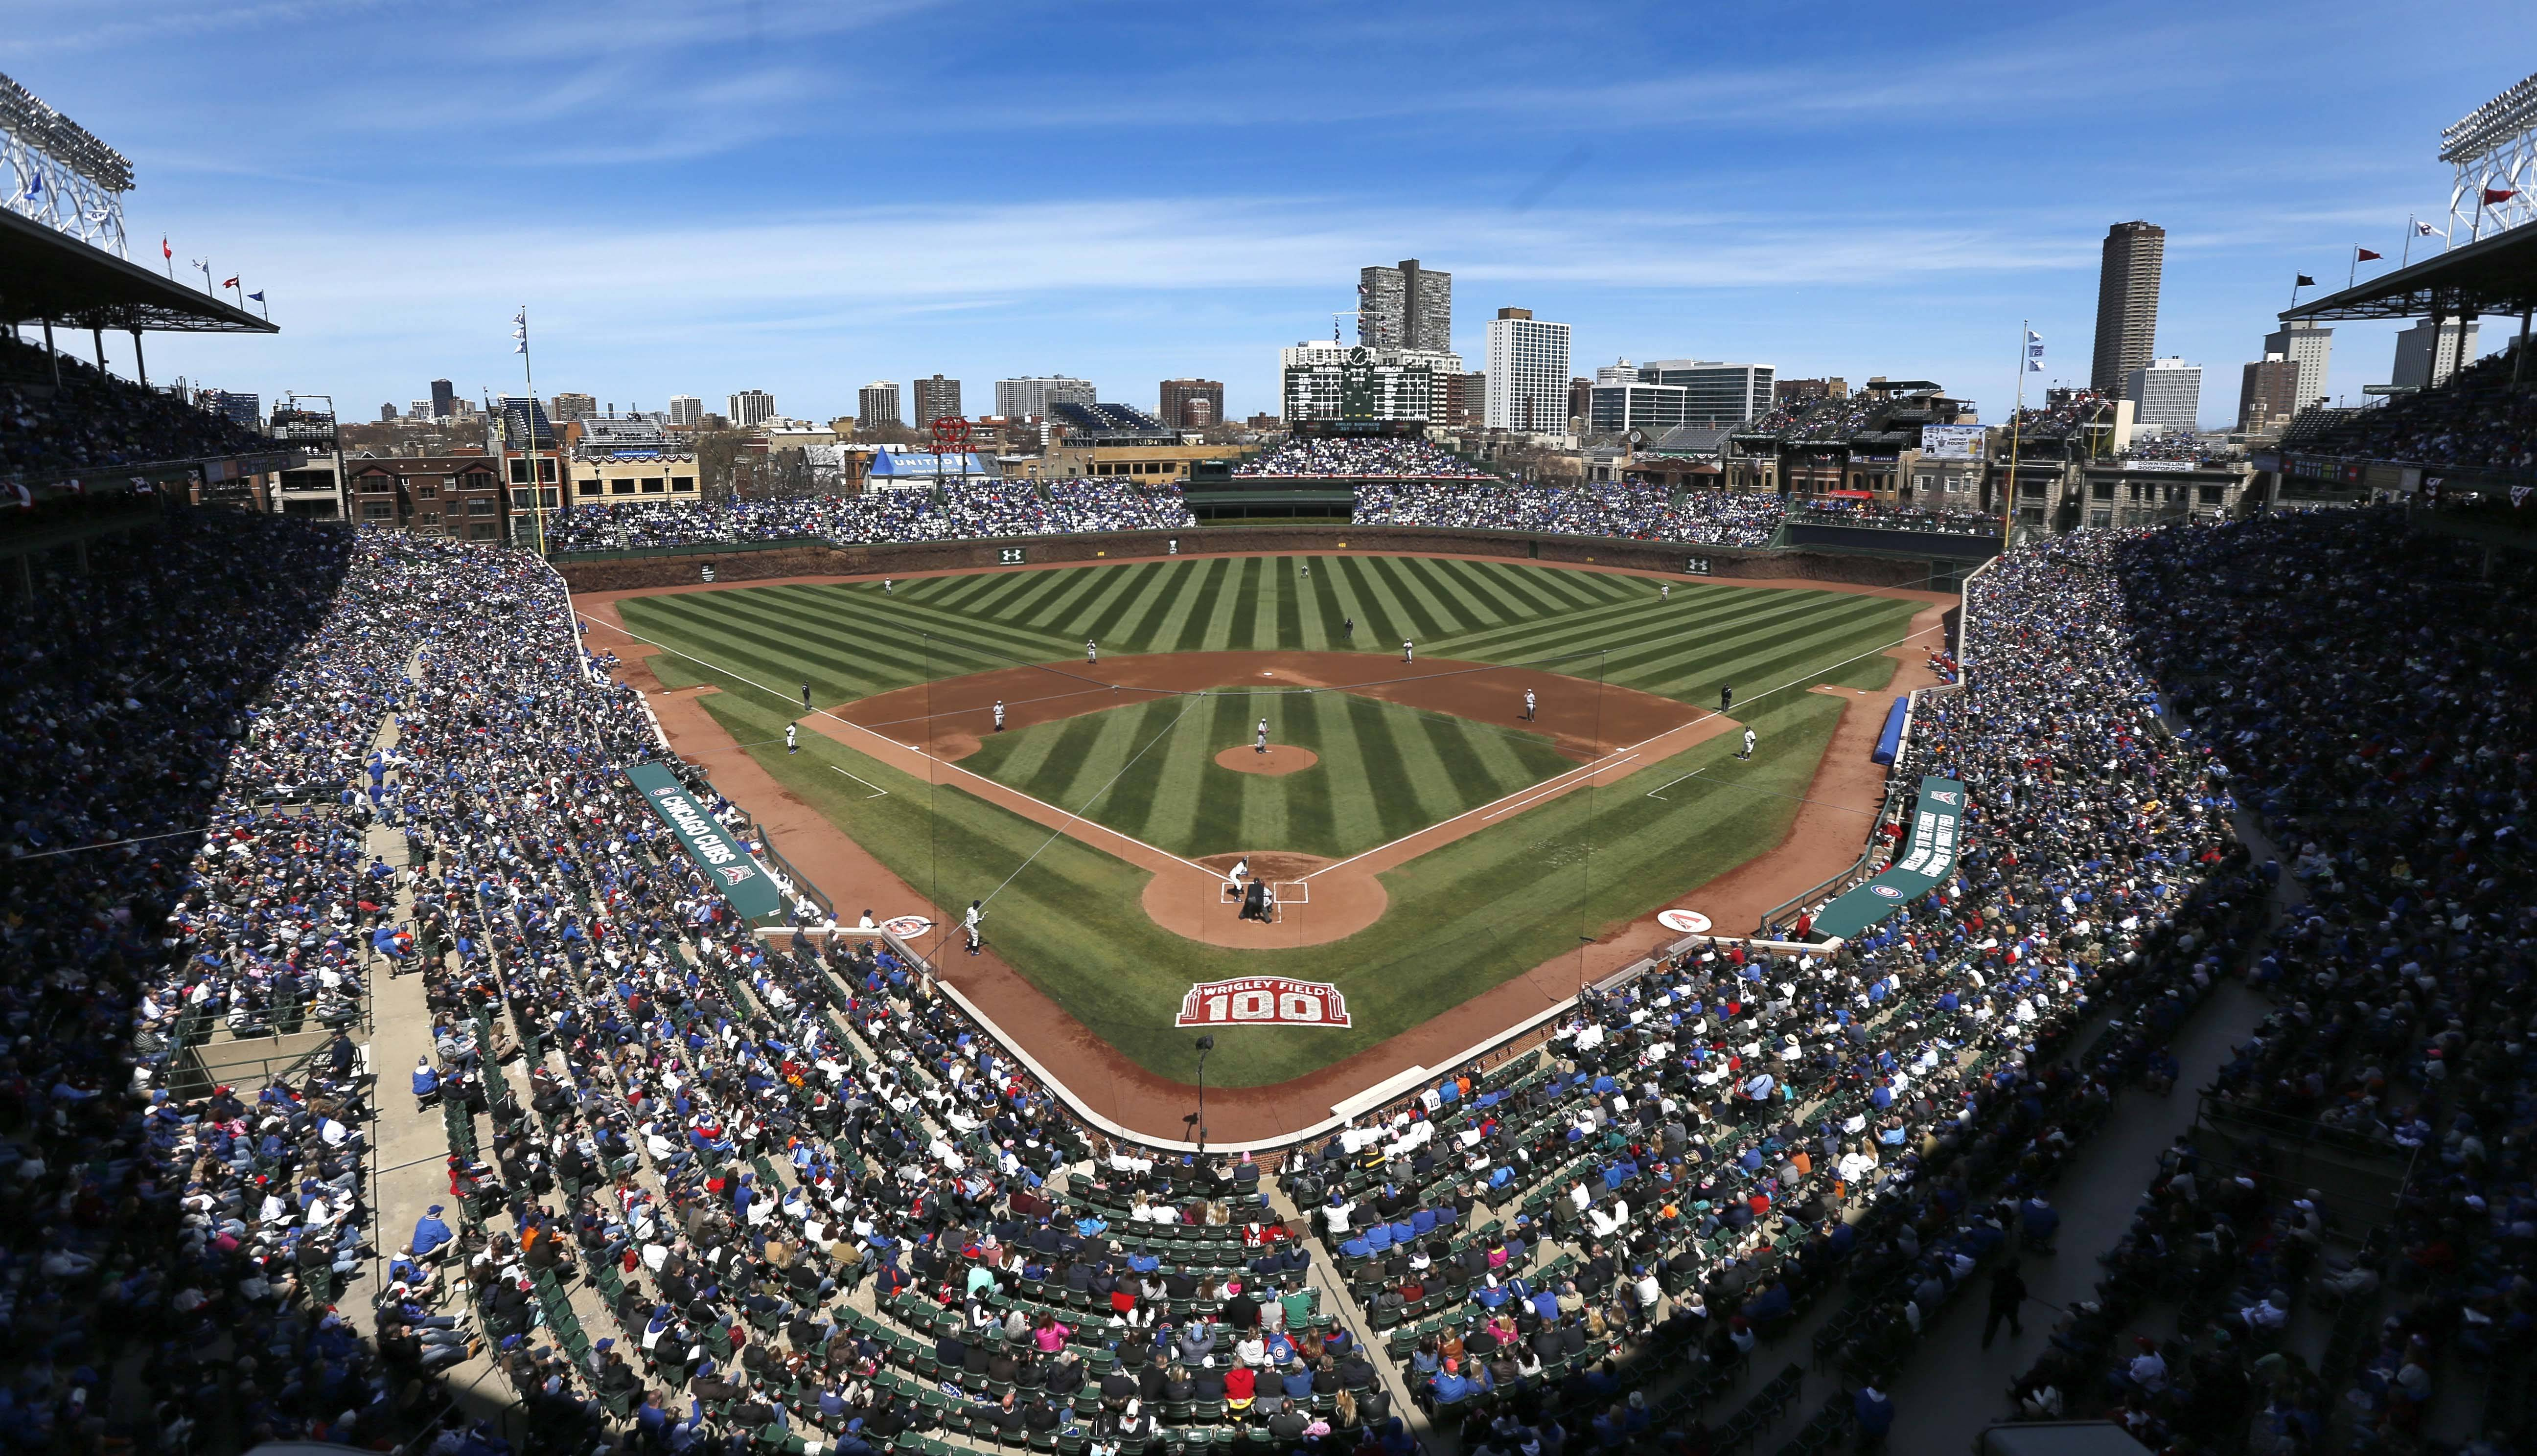 "MLB Commissioner Bud Selig says he likes what he sees from the Cubs and the Ricketts family, but he believes they are ""unfairly criticized"" for their restoration and renovation plans for Wrigley Field. Selig took part in Wednesday's 100th anniversary celebration at Wrigley."